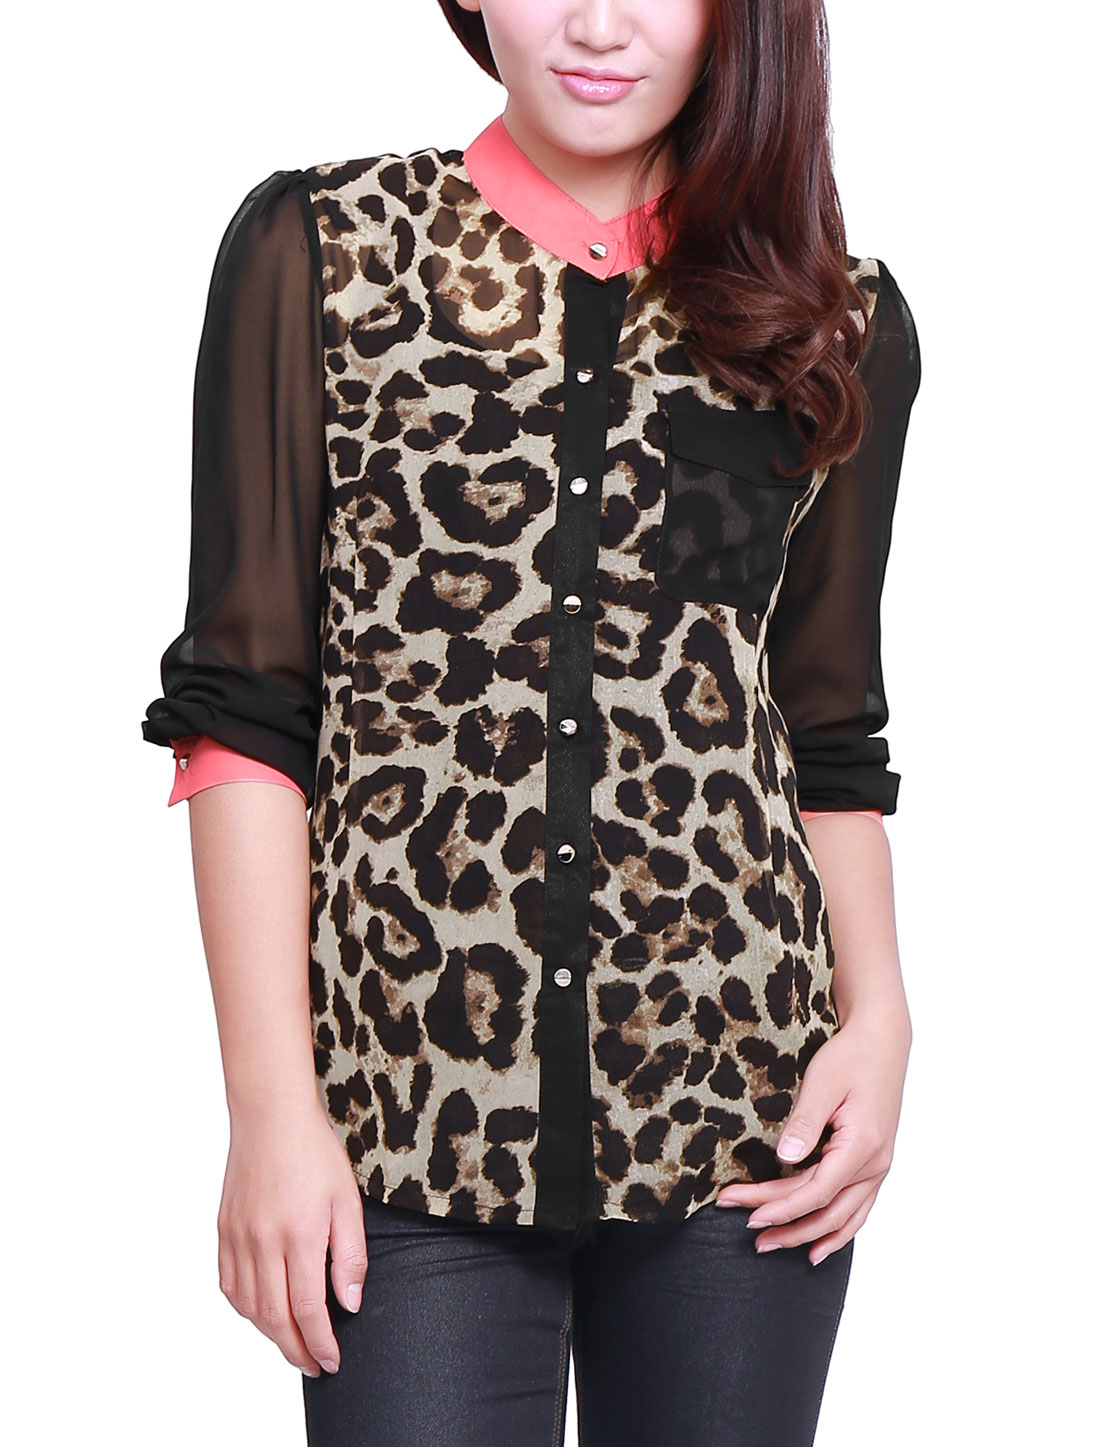 Single-Breasted Front Leopard Pattern Black Brown Blouse for Lady XL